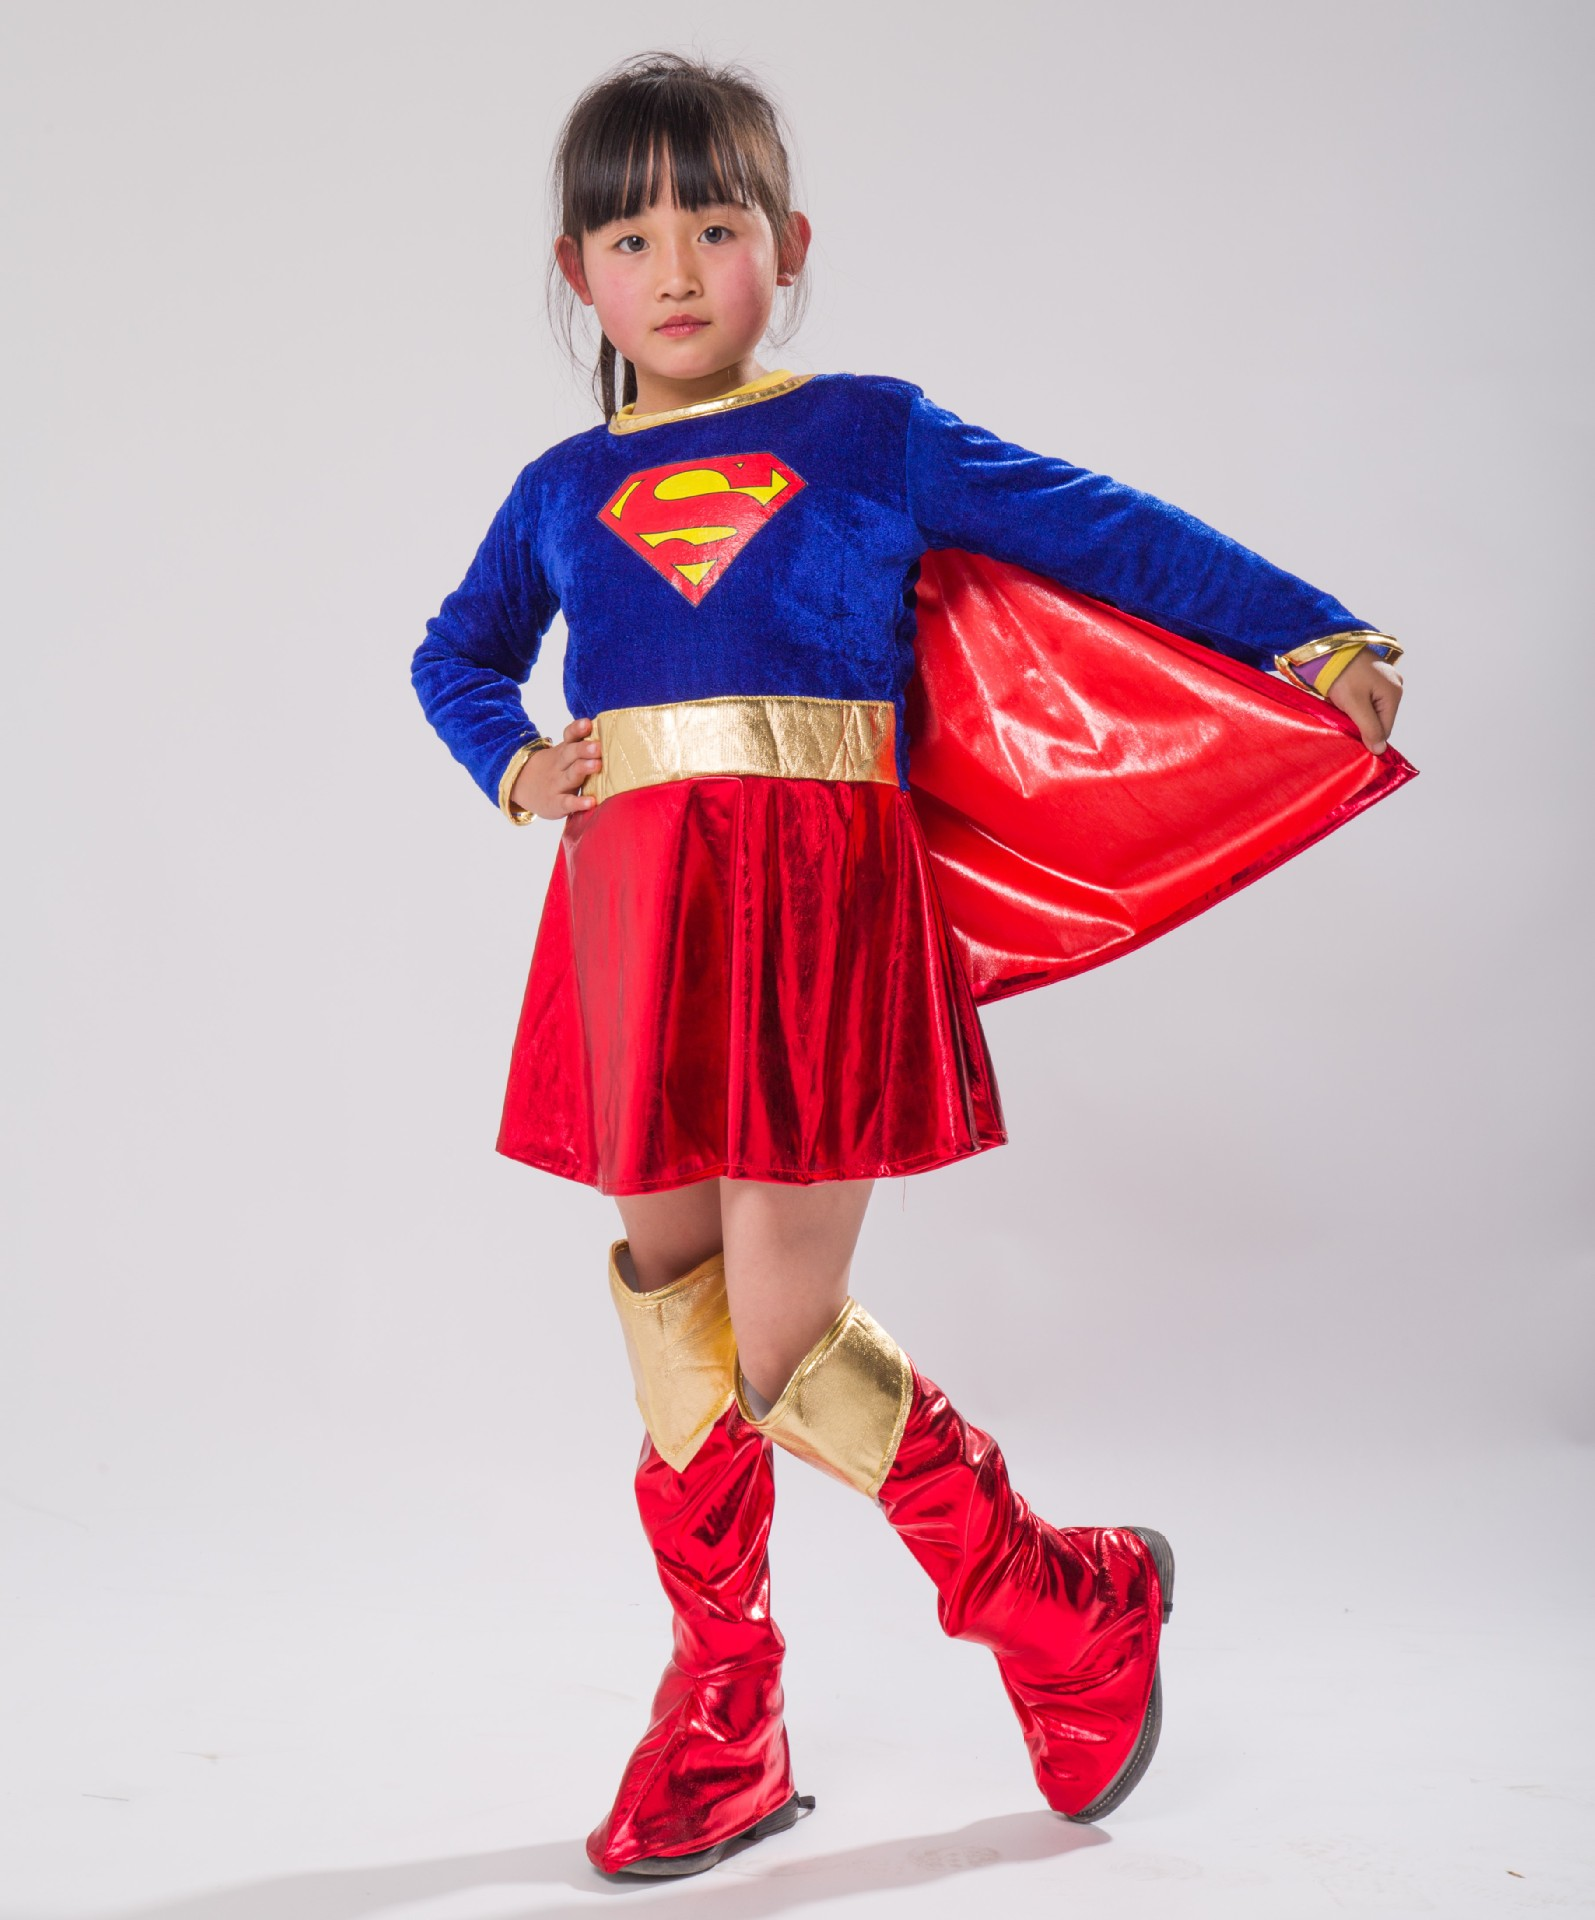 Halloween Costume For Kids Super Girl Superman Supergirl -2813